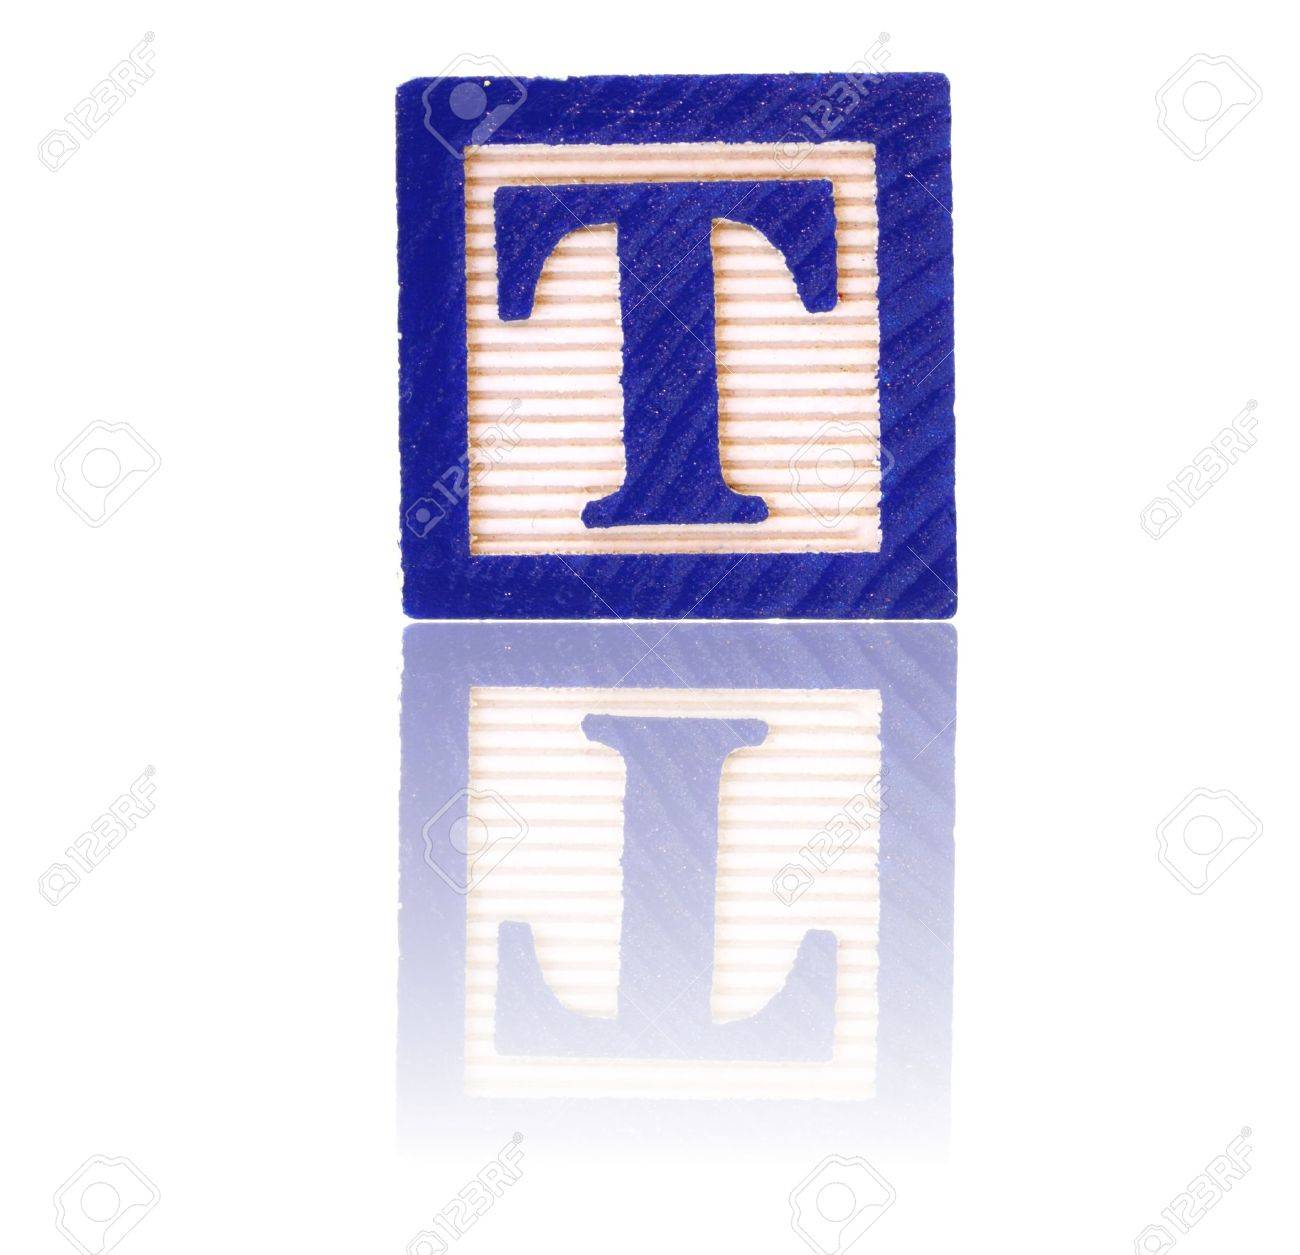 letter t in an alphabet wood block on a reflective surface Stock Photo - 3099368